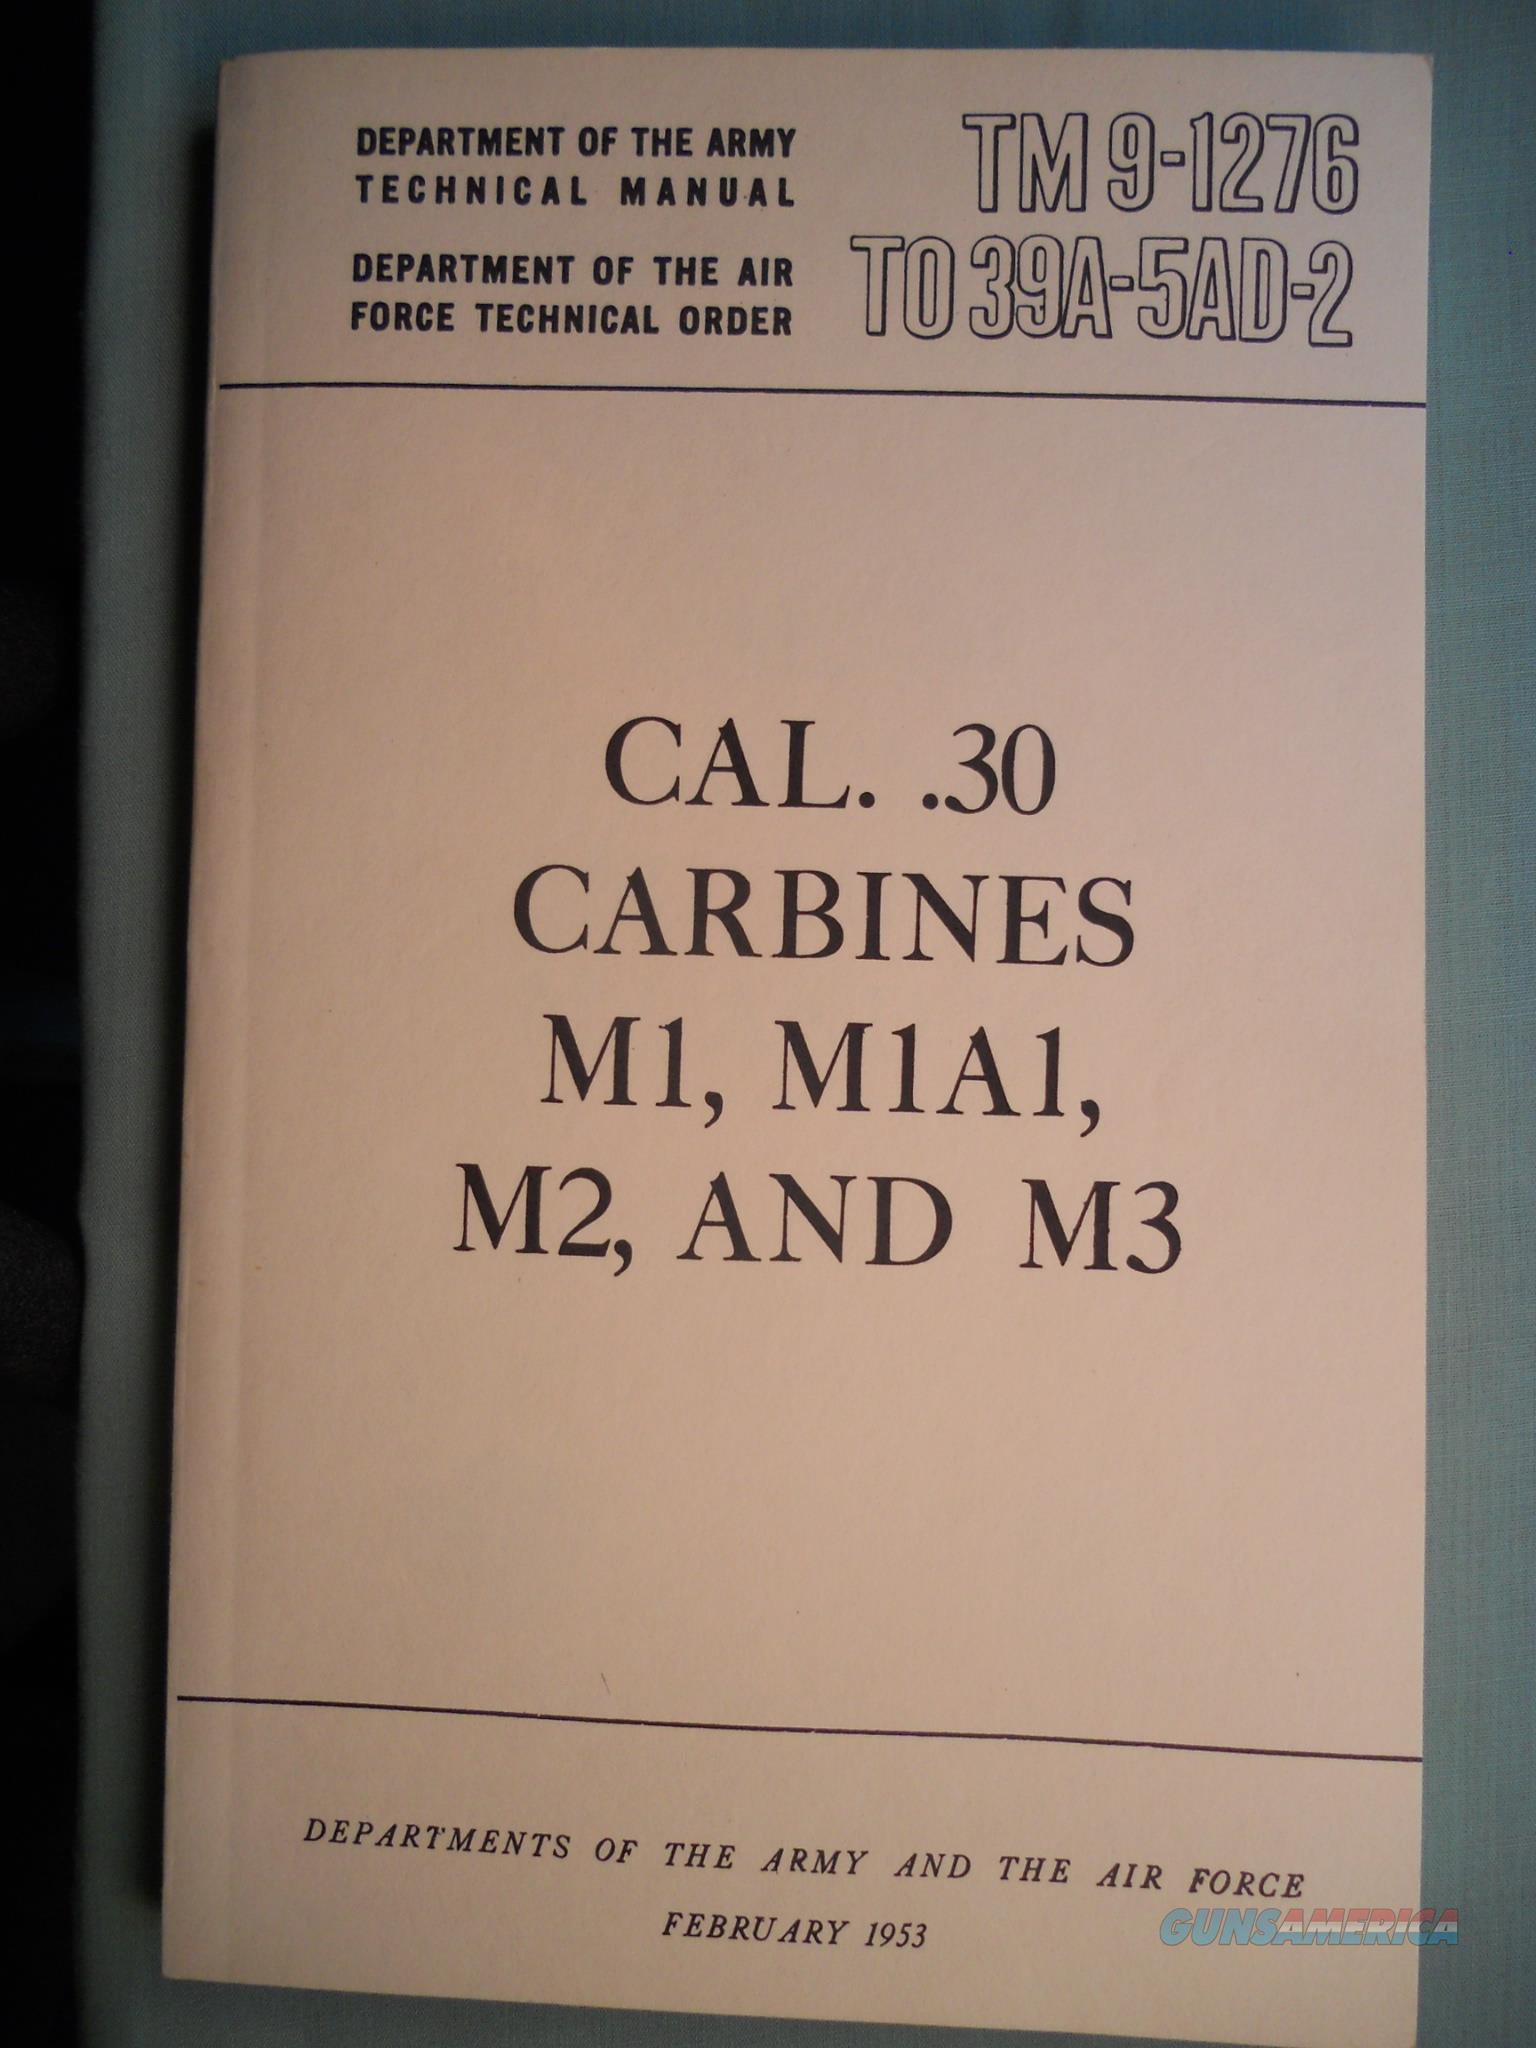 CAL. .30 CARBINES, M1, M1A1, M2, AND M3   TM 9-1276 T039A-5AD-2 FEBRUARY 1953  Non-Guns > Magazines & Clips > Rifle Magazines > Other